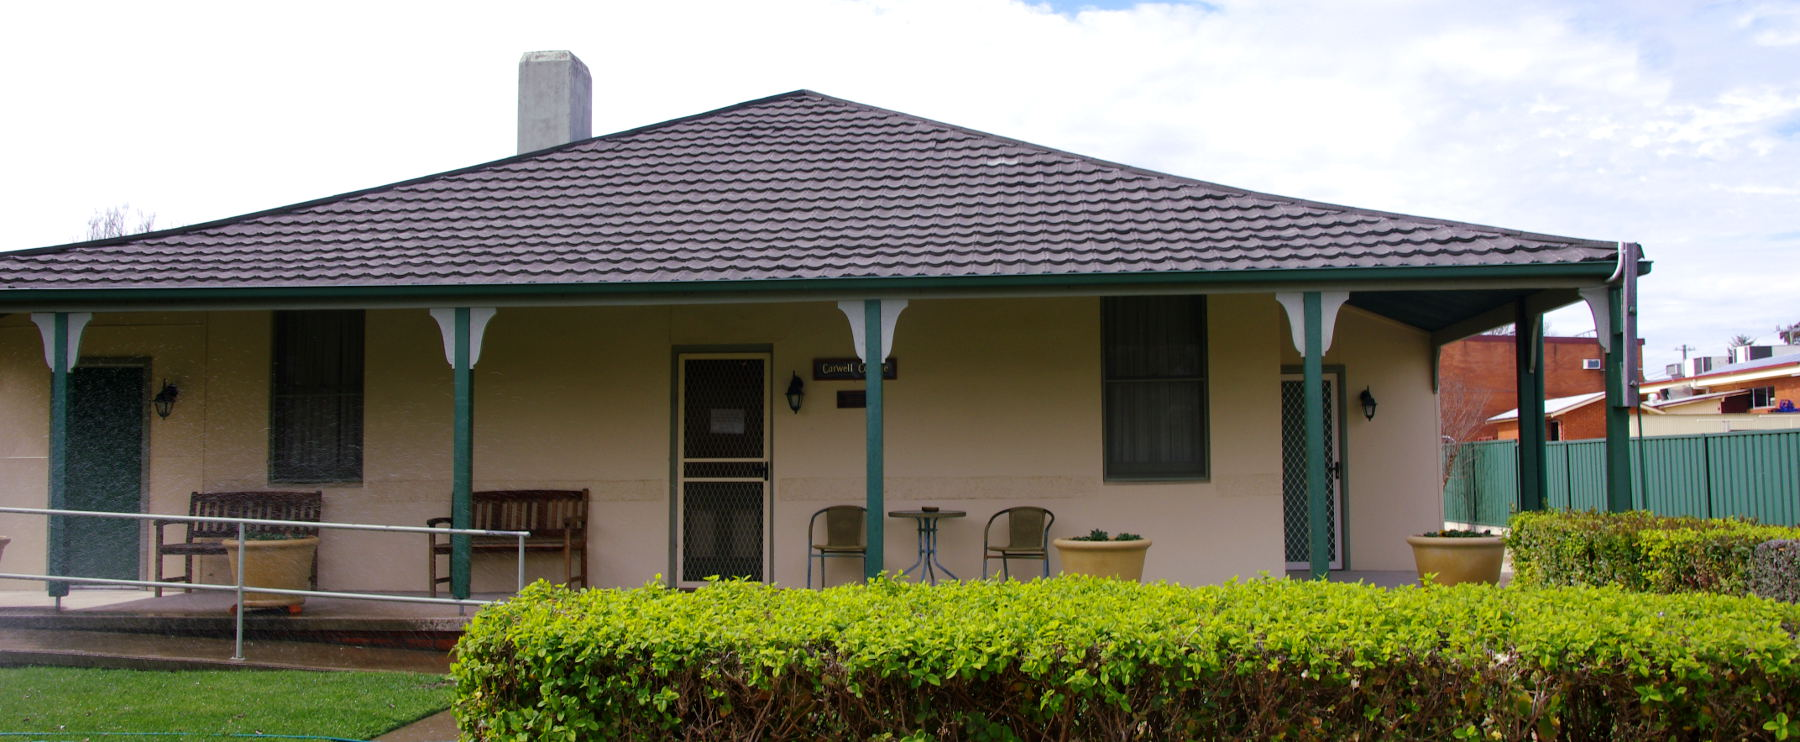 Carwell Cottage, Rylstone accommodation - built 1929